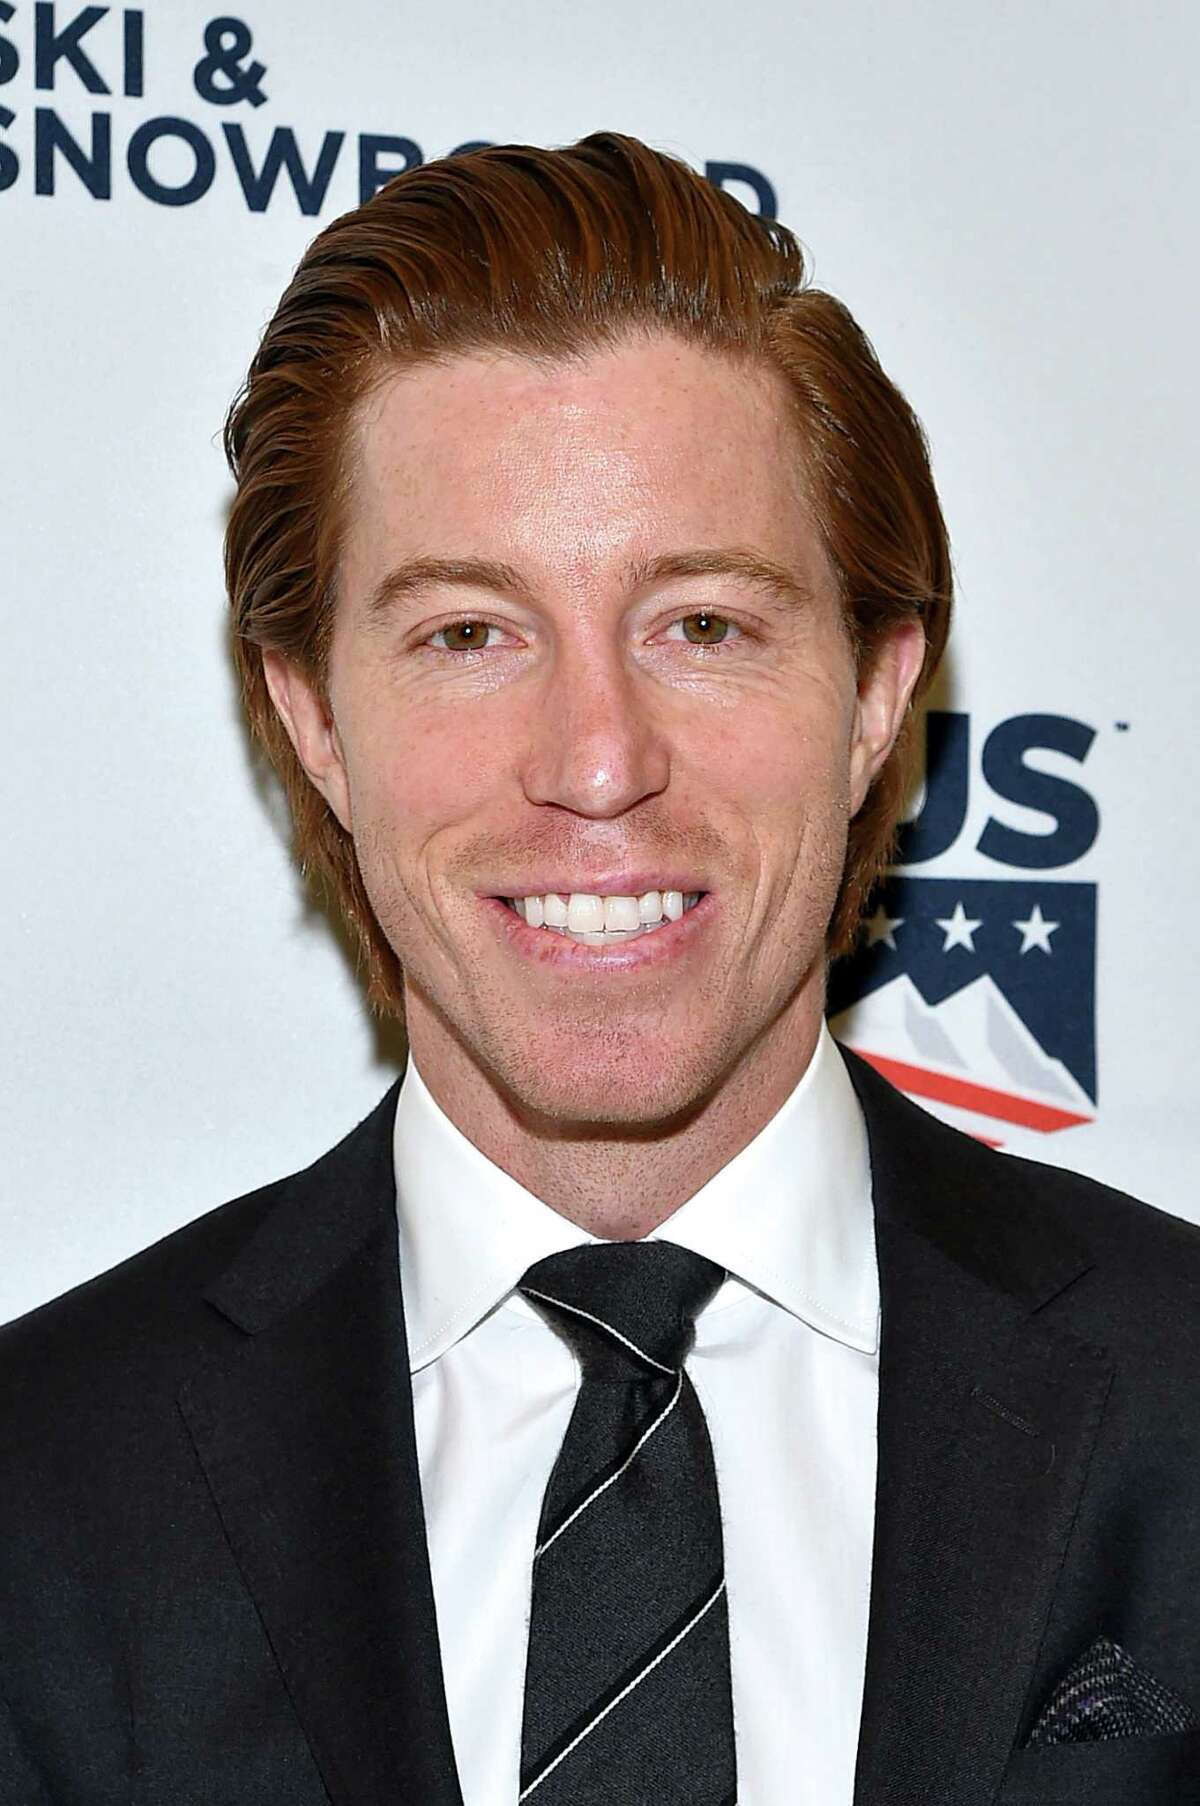 NEW YORK, NEW YORK - OCTOBER 25: Shaun White attends the Gold Medal Gala at The Ziegfeld Ballroom on October 25, 2018 in New York City. (Photo by Mike Coppola/Getty Images)